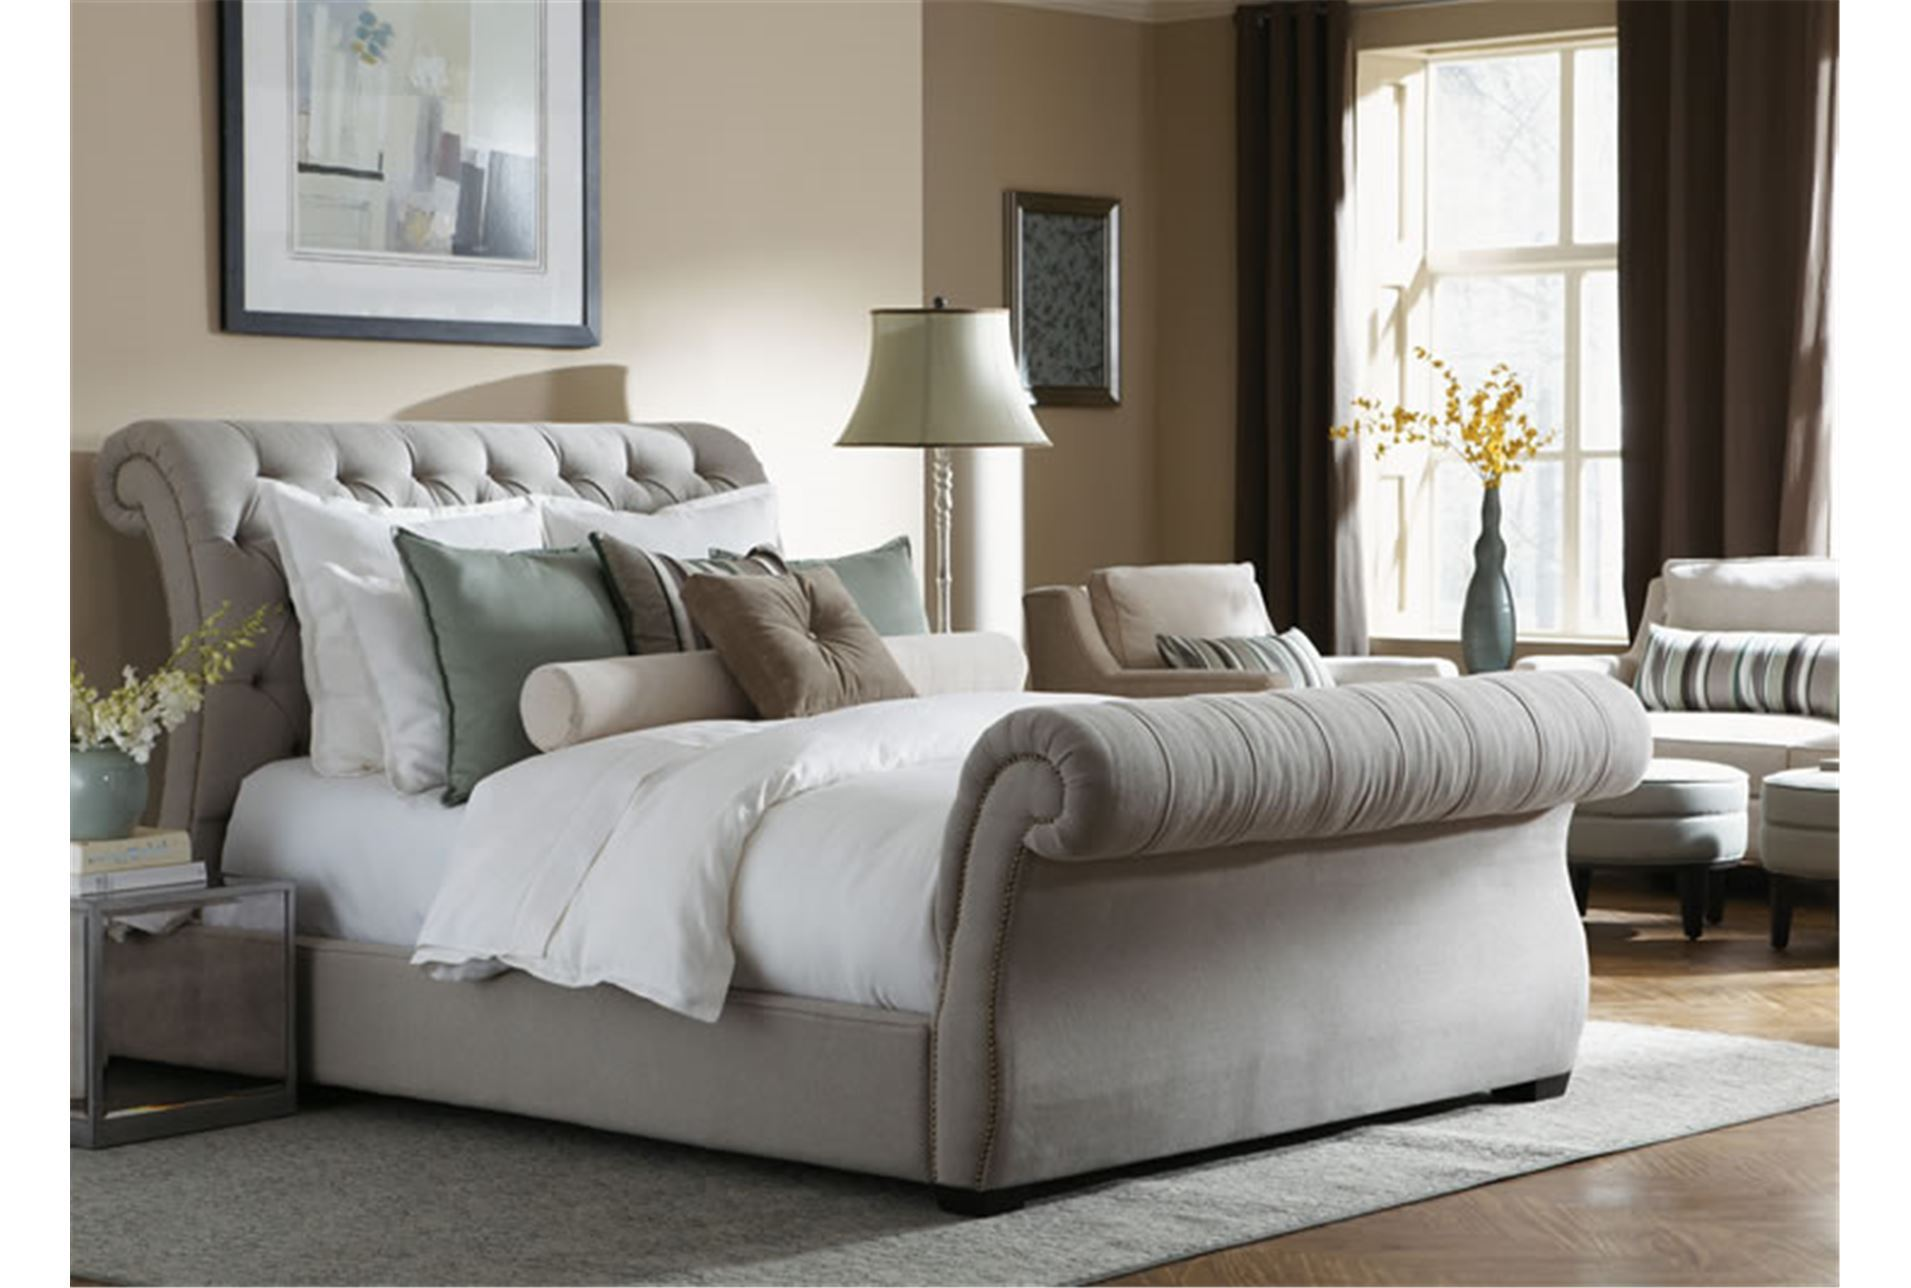 Shop furniture online furniture store same day delivery Upholstered sleigh bed